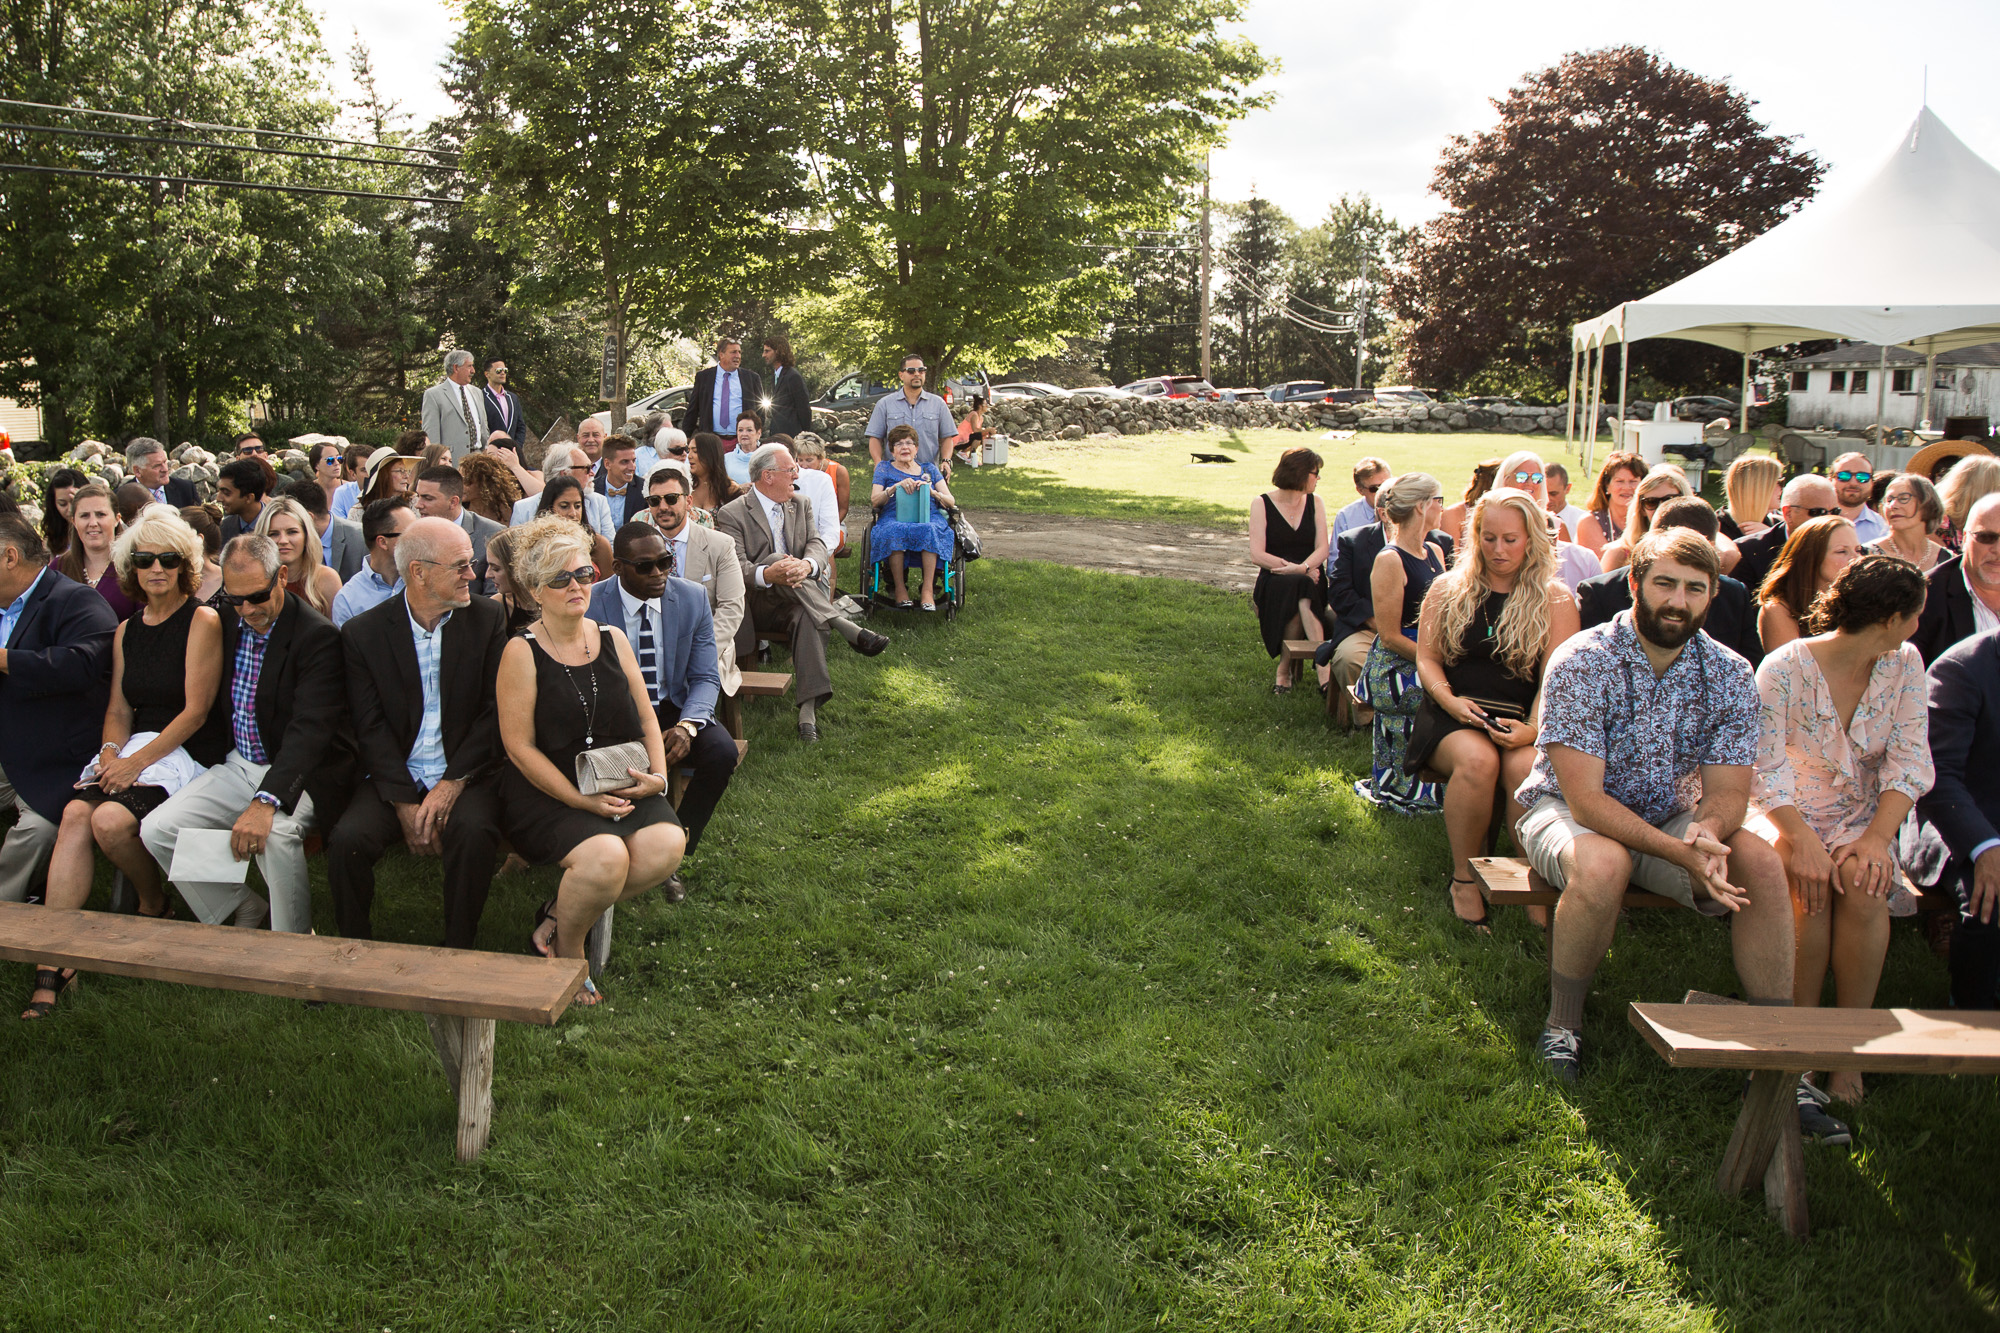 wedding guests waiting at ceremony location at Bunnell Farm in Litchfield, CT